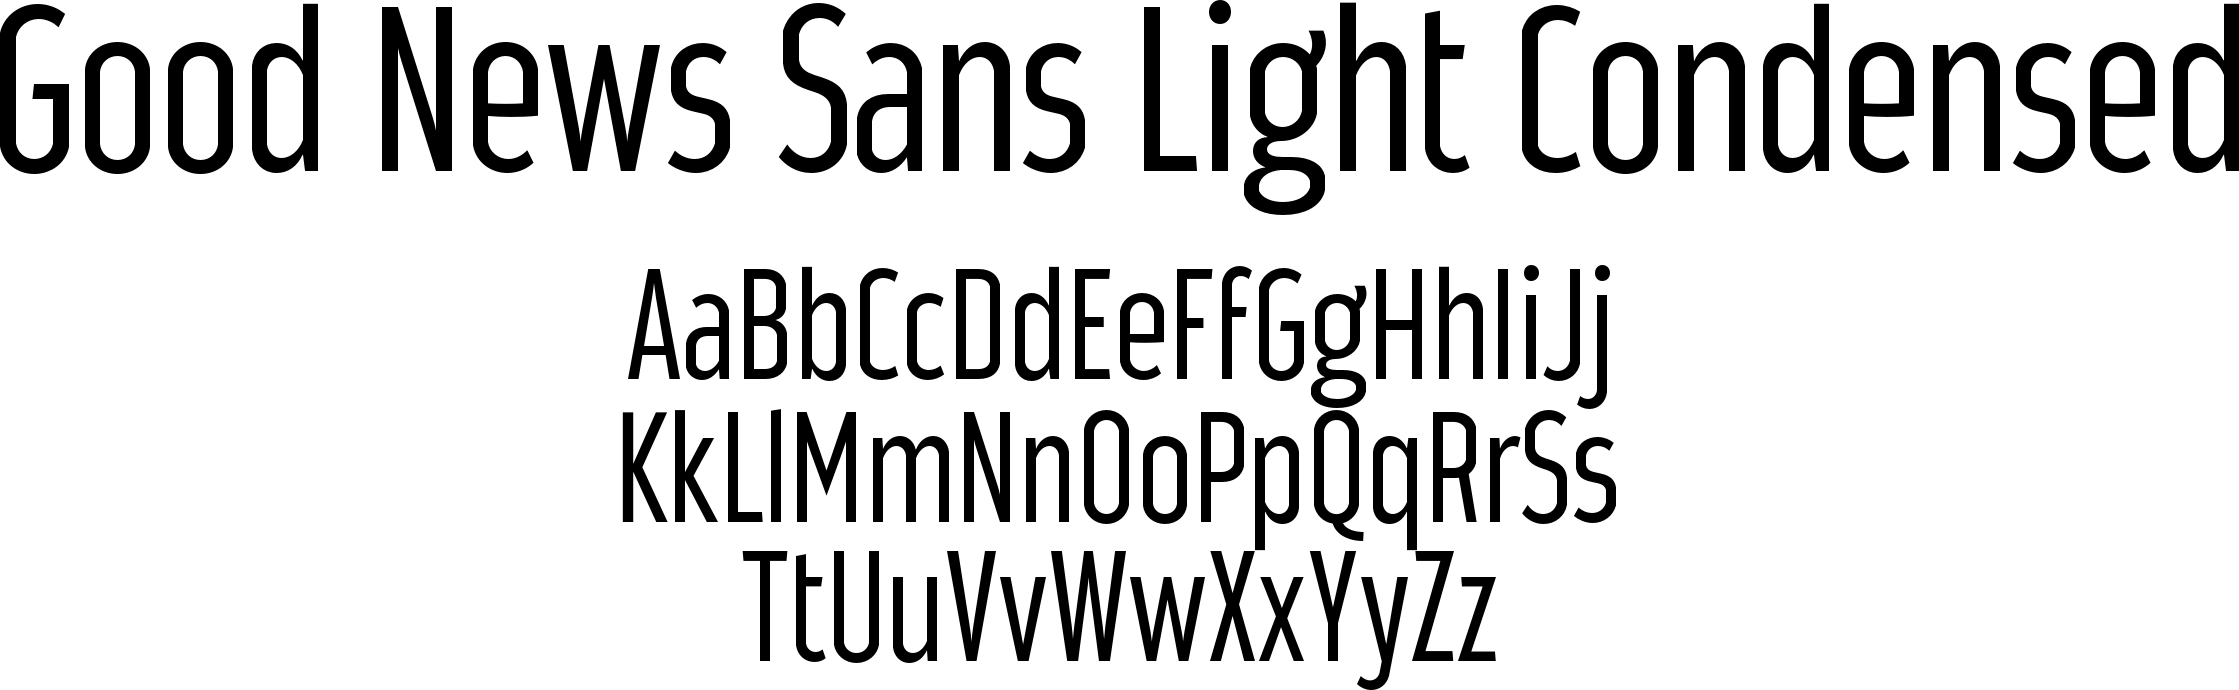 Good News Sans Light Condensed